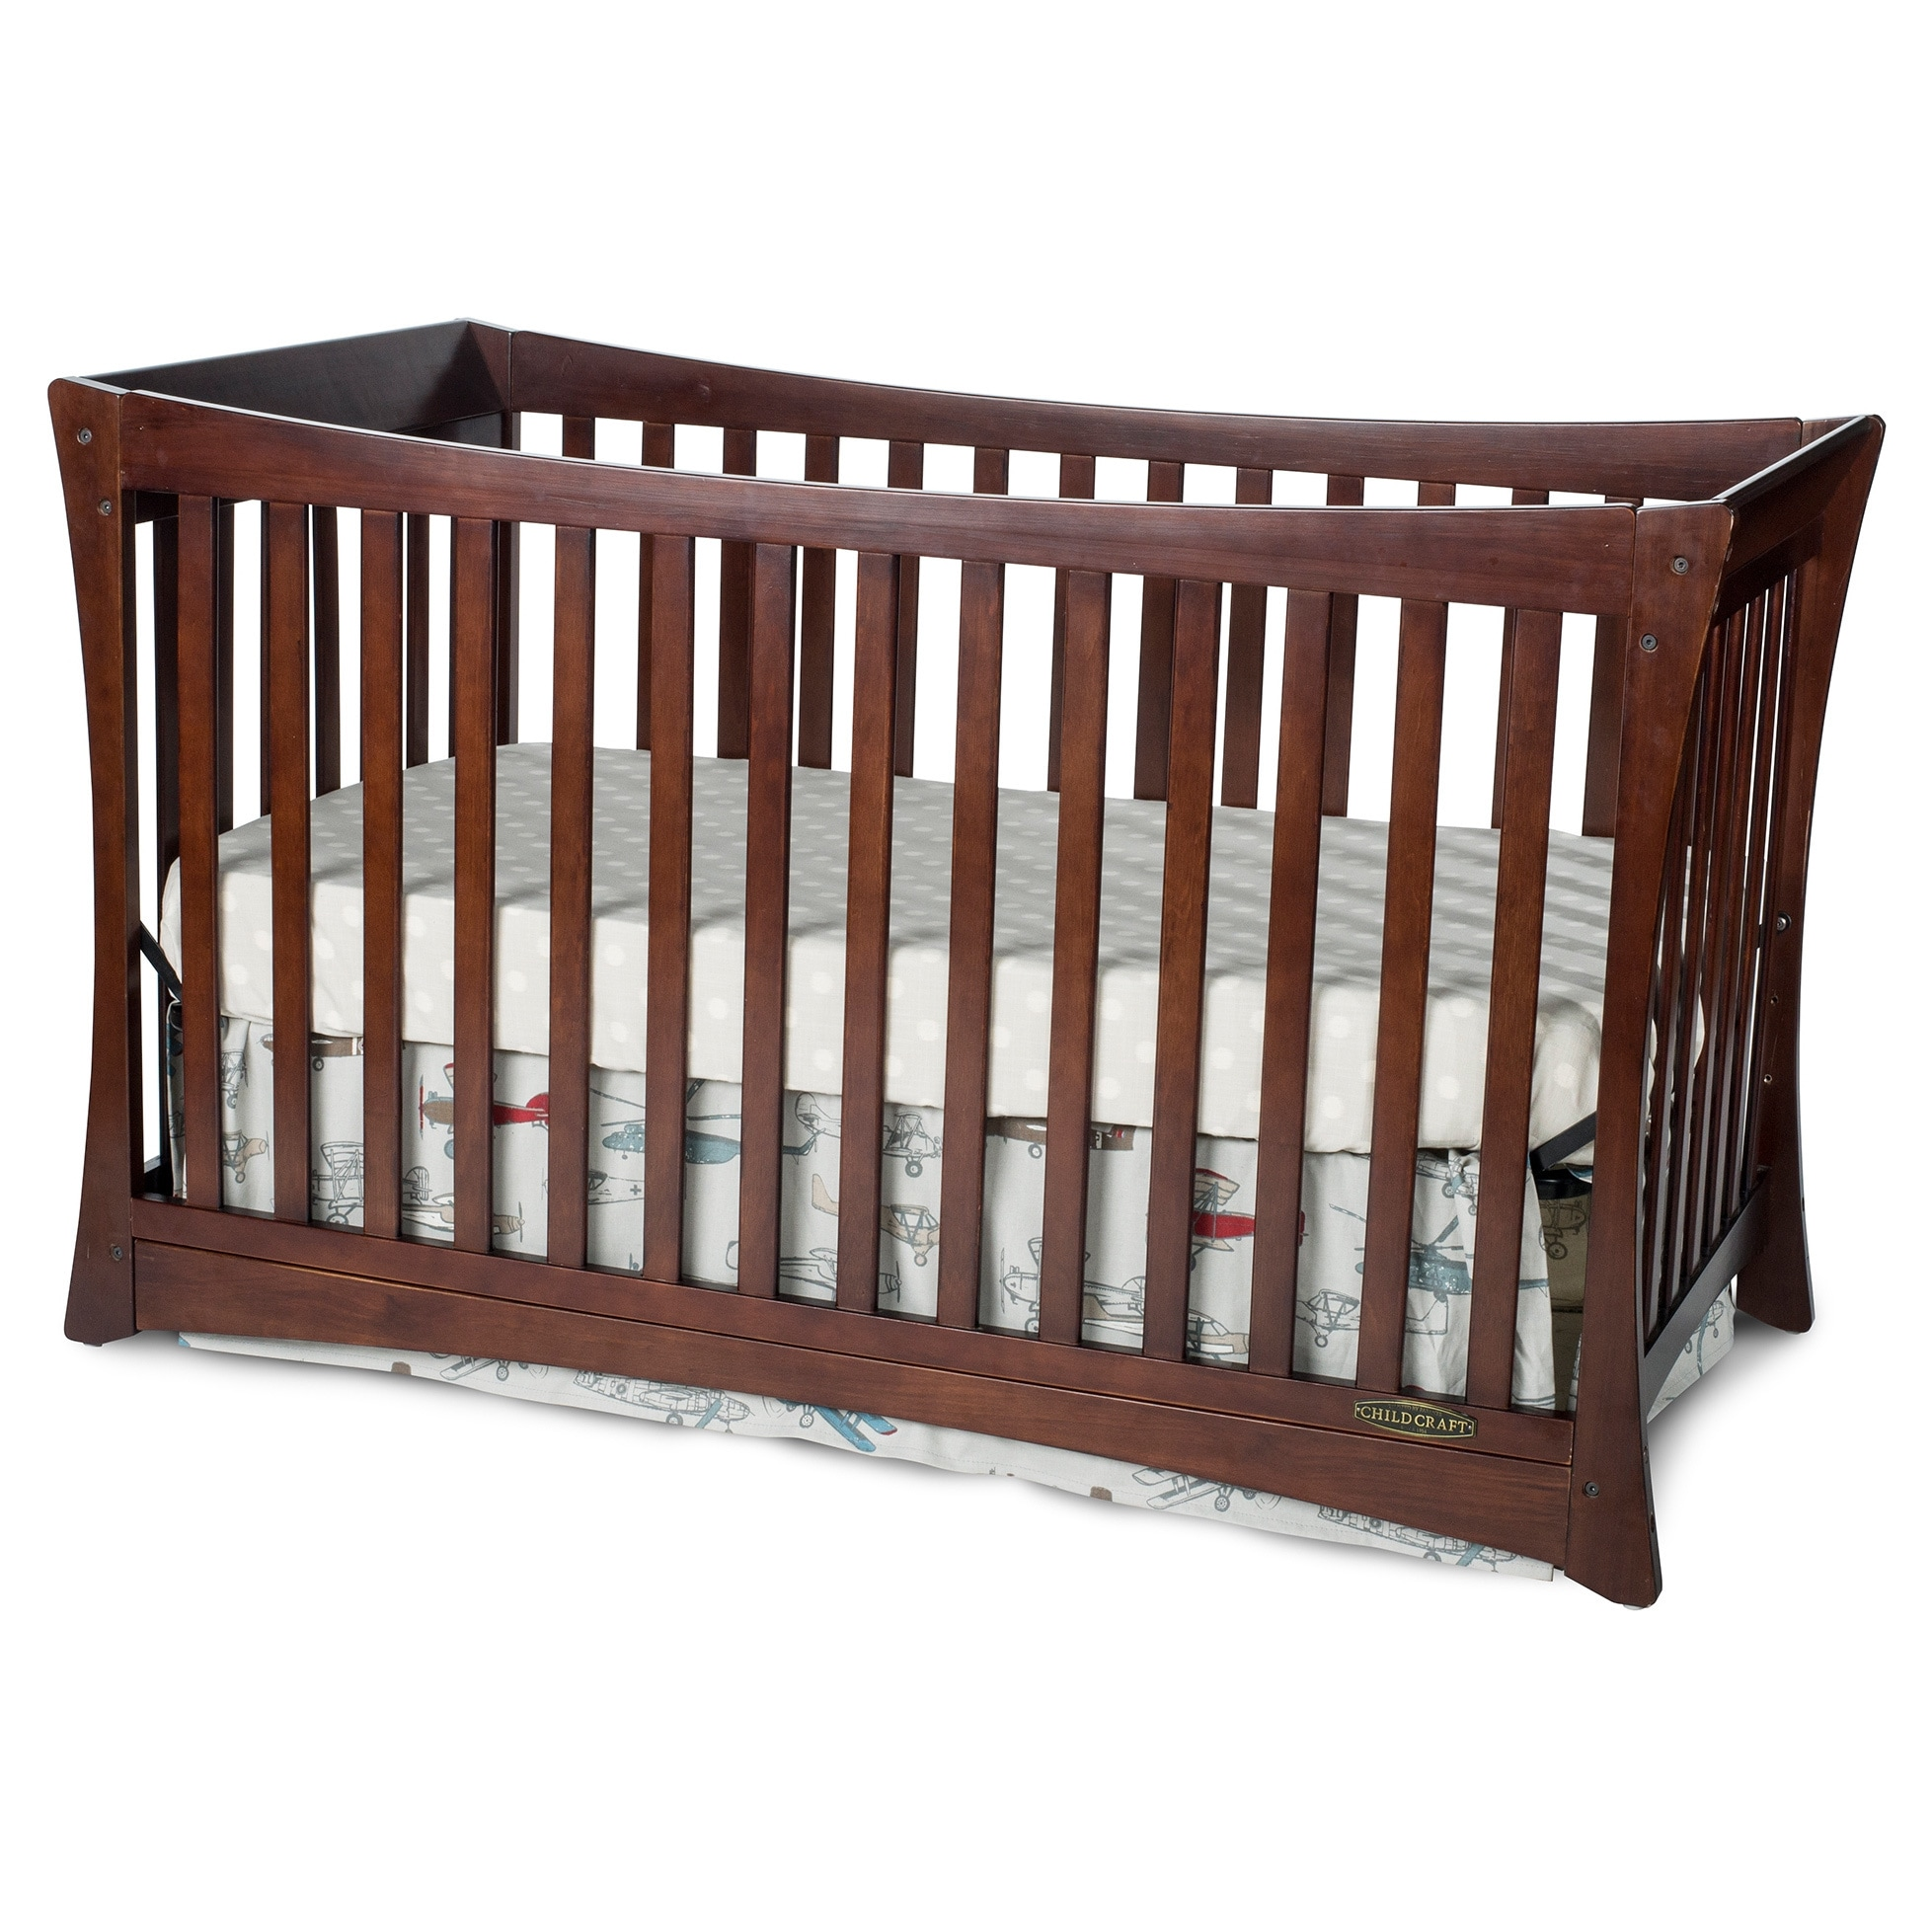 Child Craft Parisian 3-in-1 Stationary Crib in Cherry at Sears.com